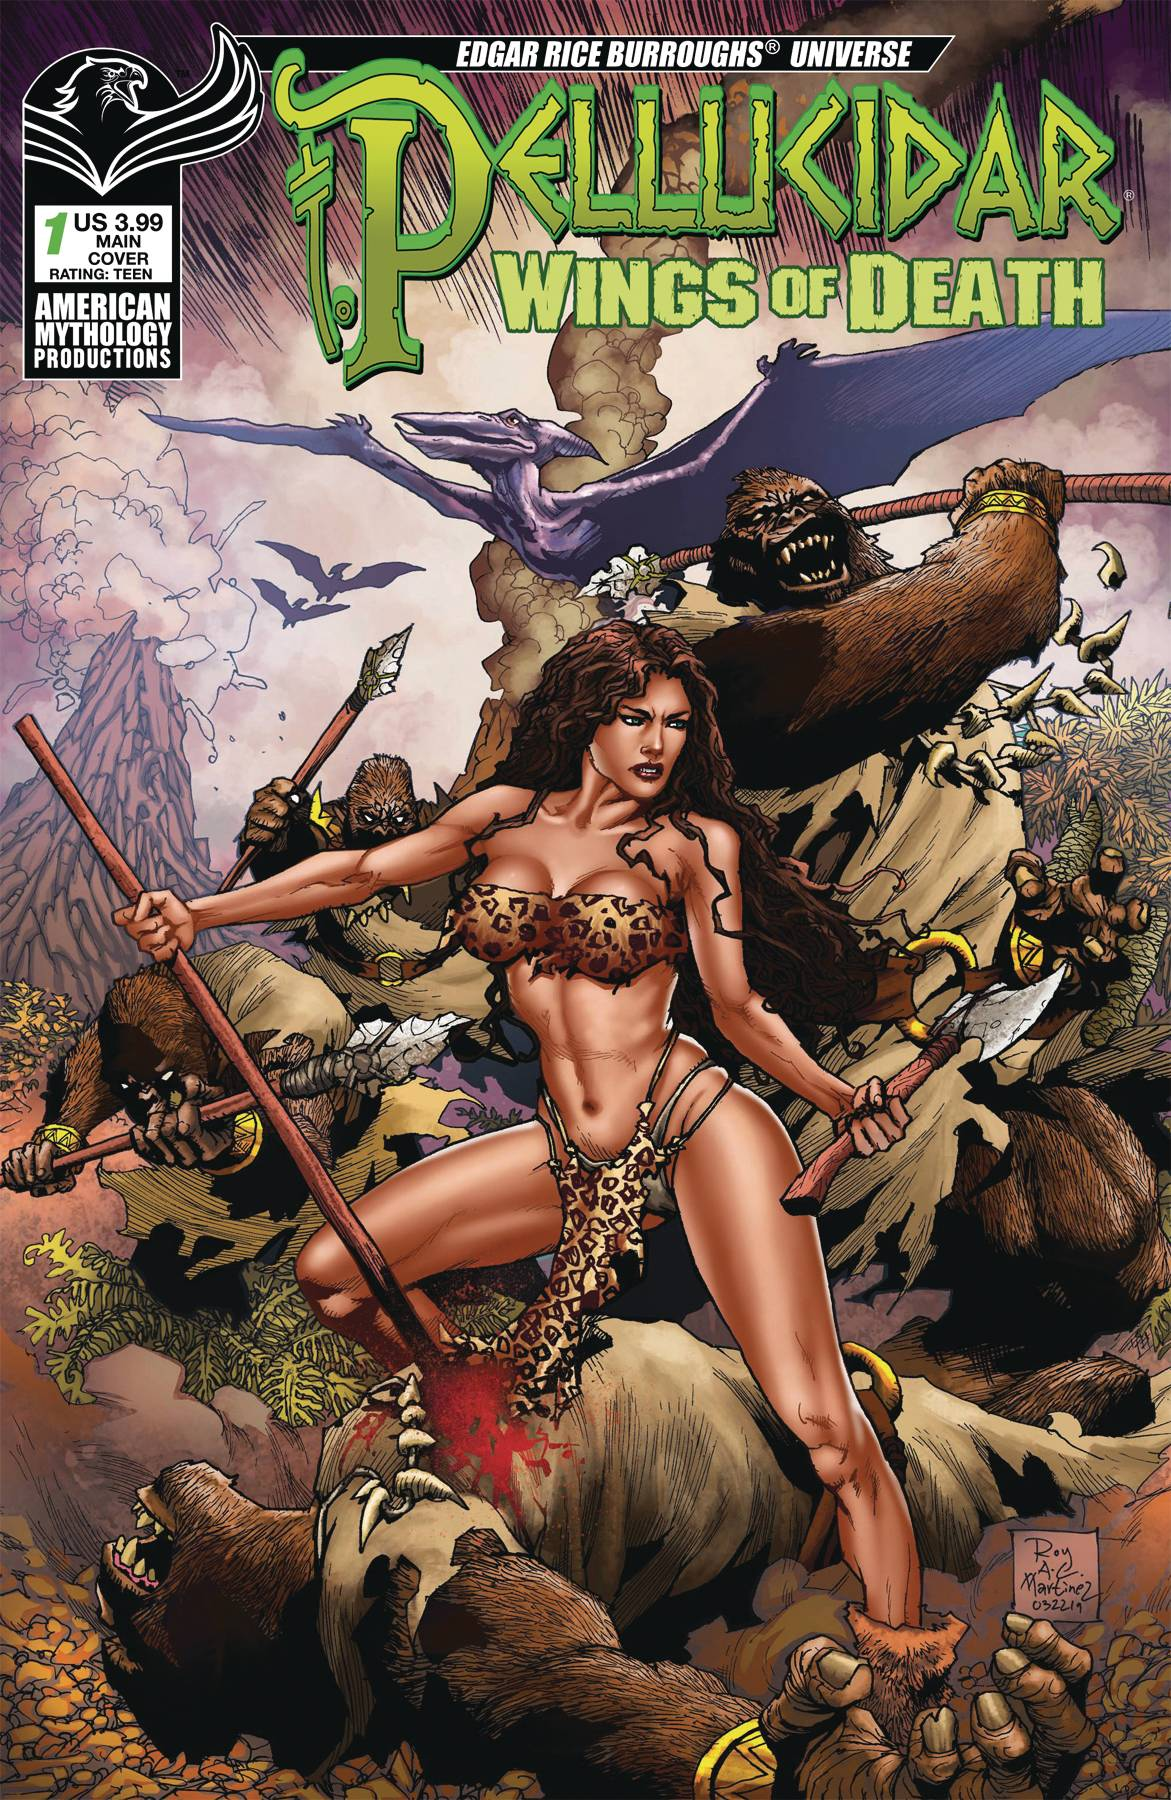 PELLUCIDAR WINGS OF DEATH #1 CVR A MARTINEZ (O/A)